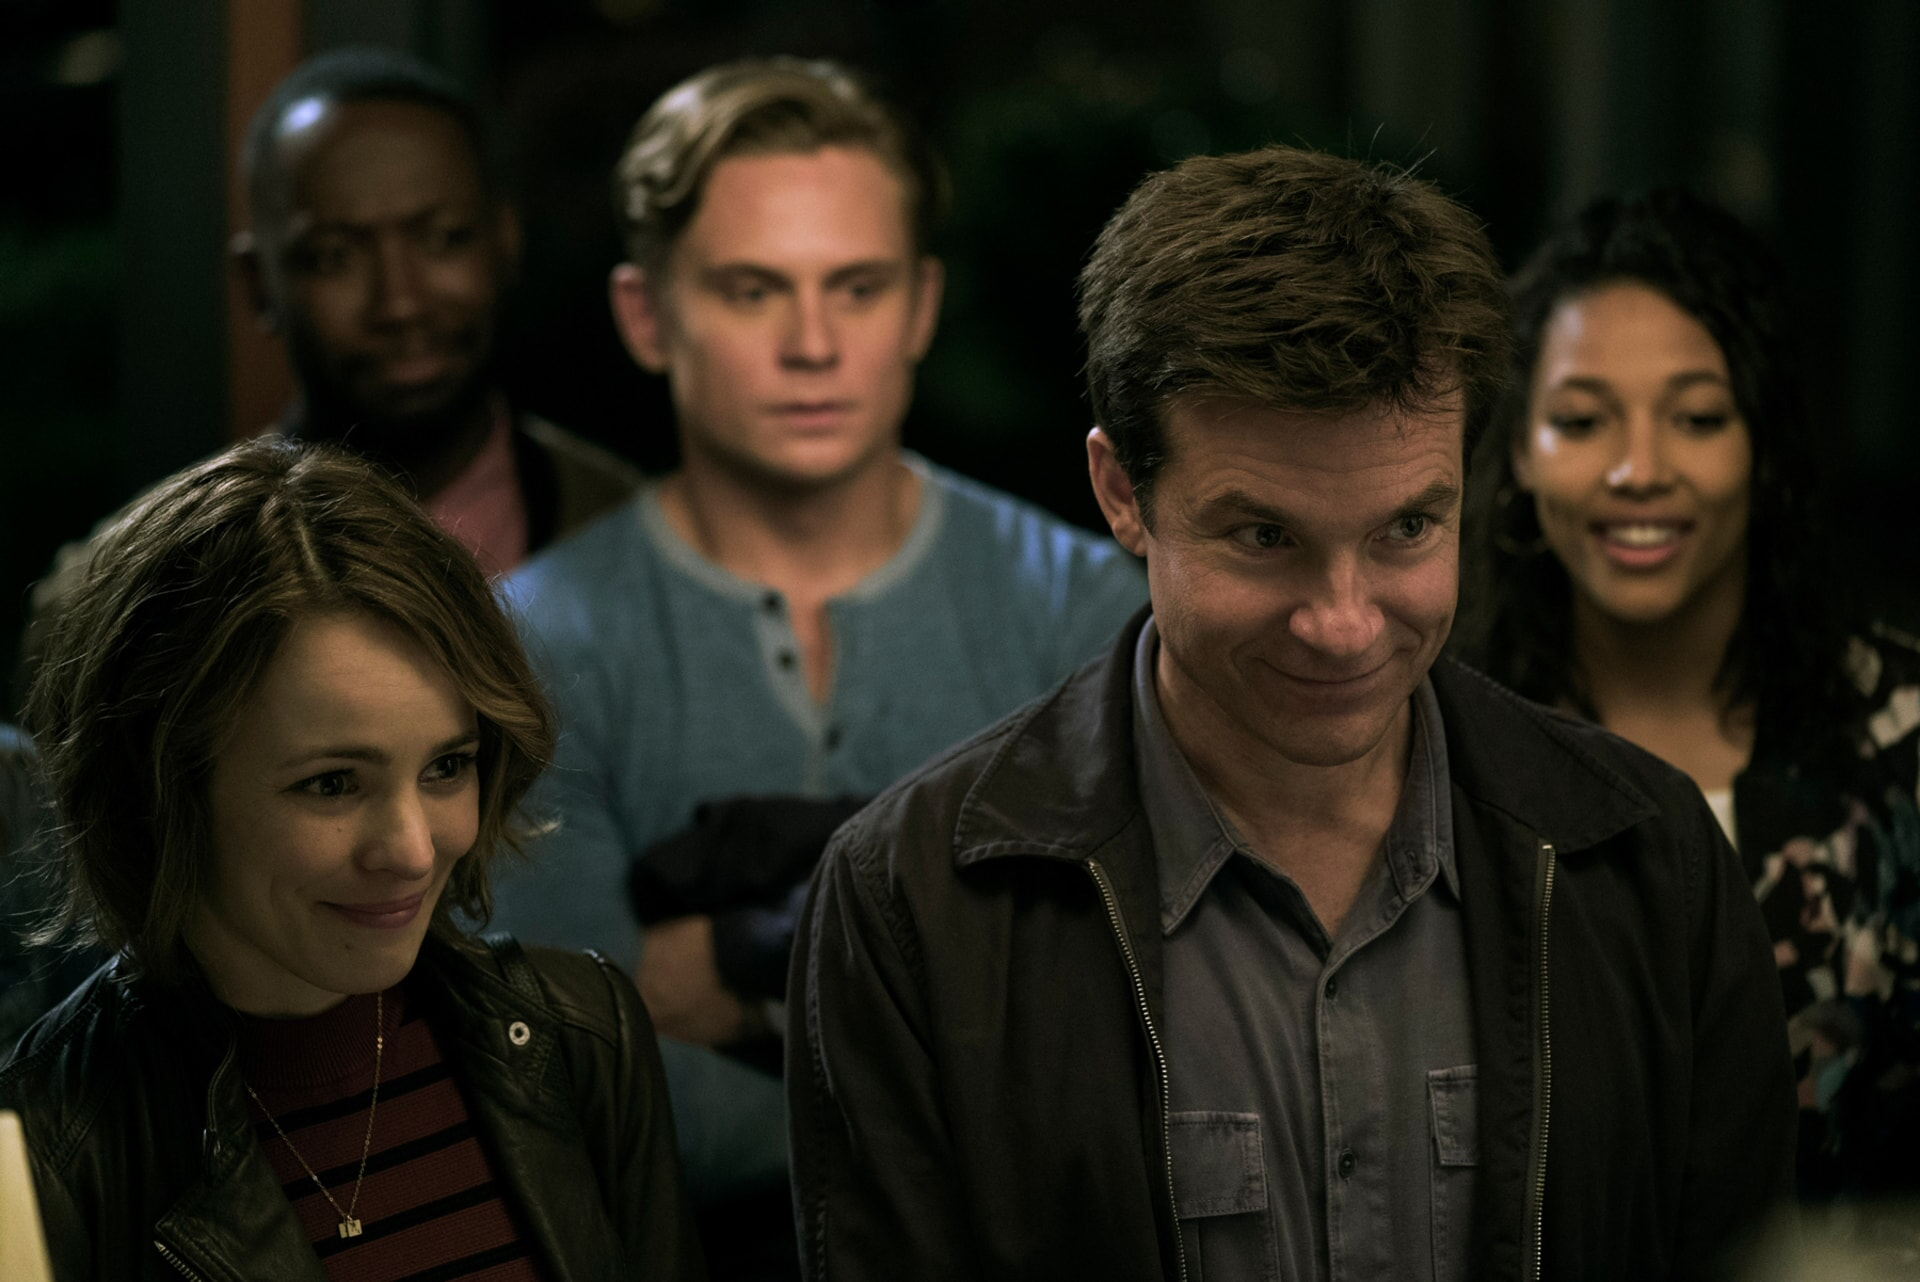 """RACHEL McADAMS as Annie, LAMORNE MORRIS as Kevin, BILLY MAGNUSSEN as Ryan, JASON BATEMAN as Max and KYLIE BUNBURY as Michelle in New Line Cinema's action comedy """"GAME NIGHT,"""" a Warner Bros. Pictures release."""